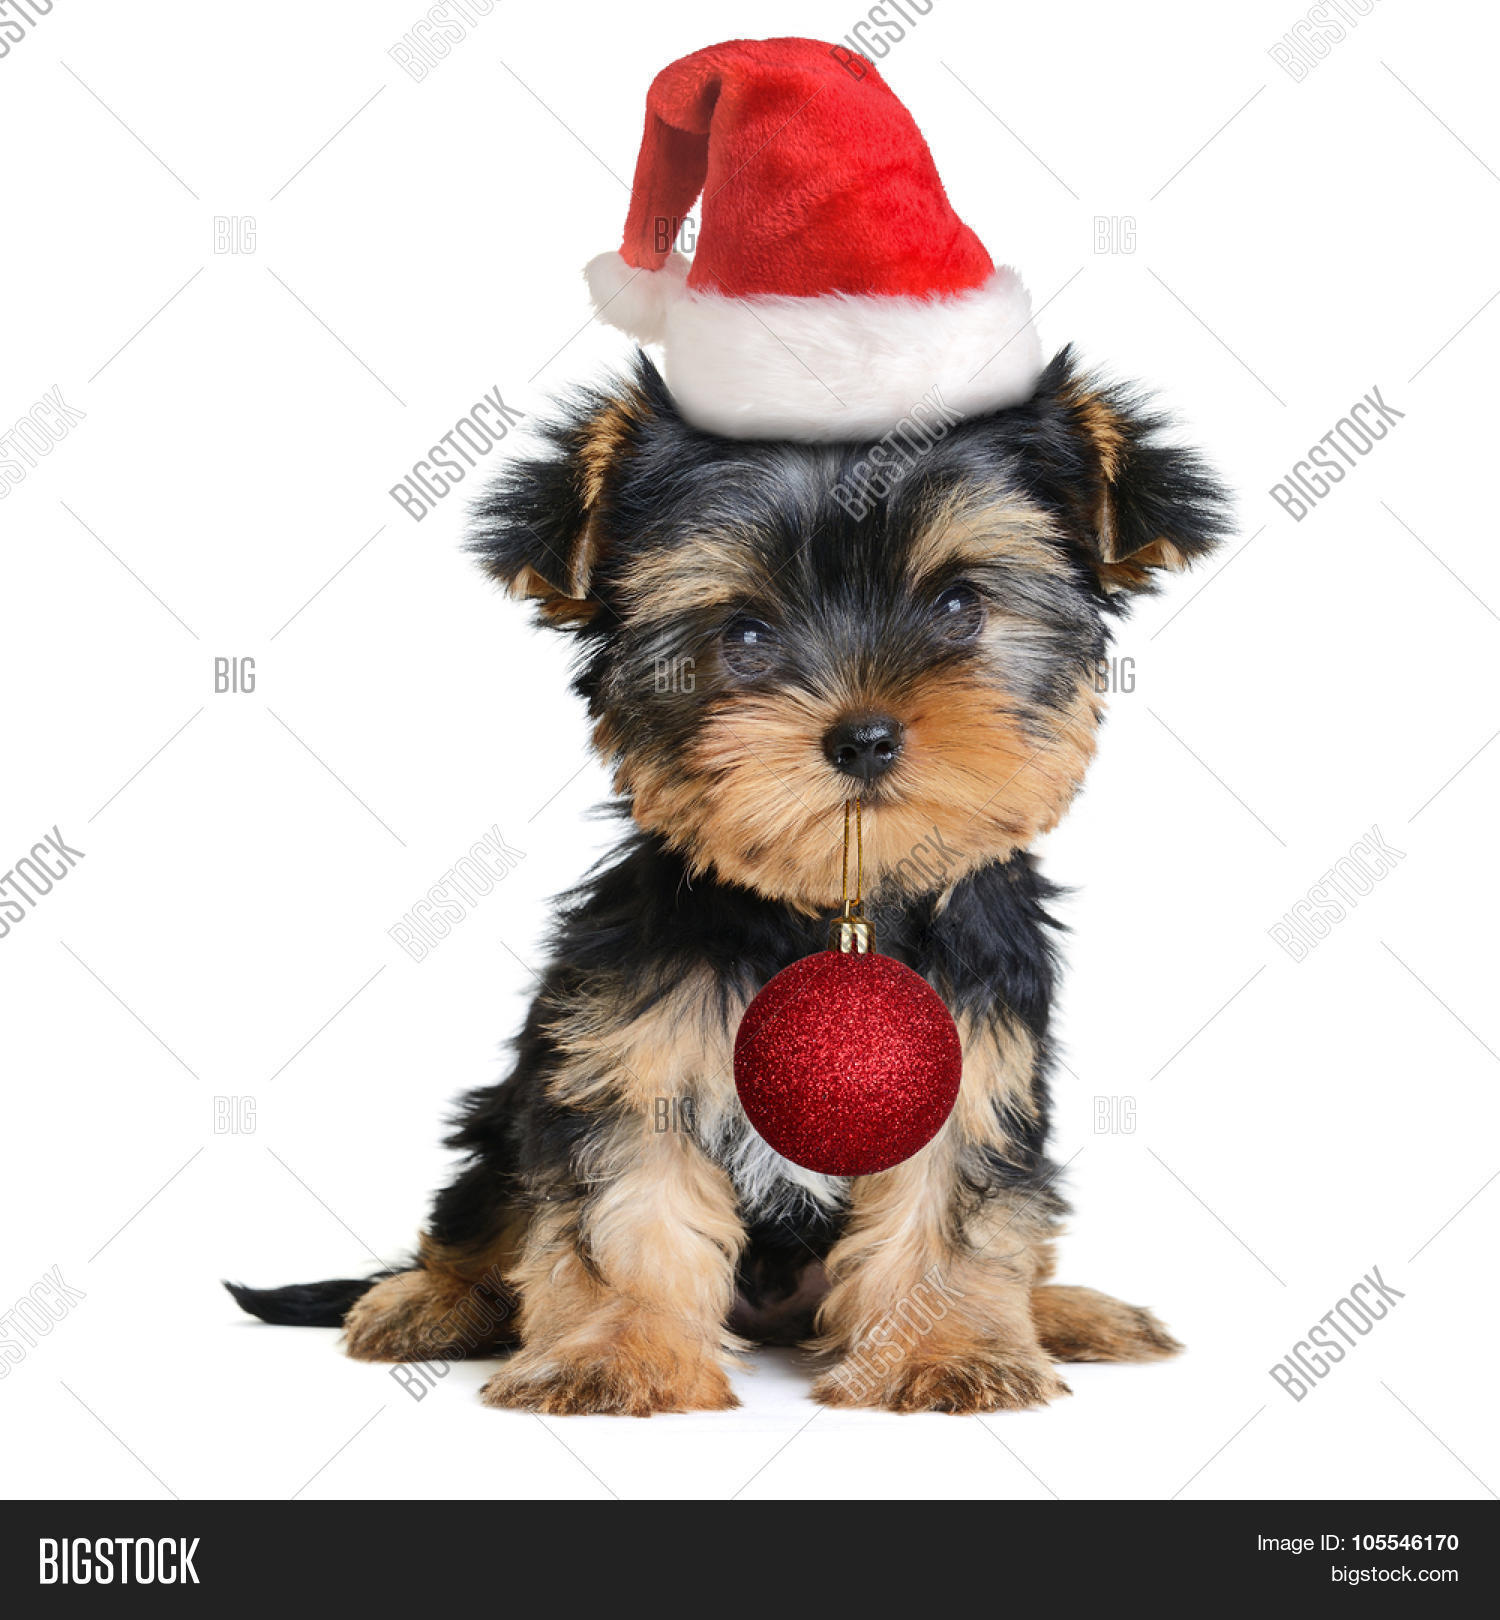 Yorkshire Terrier Dog Image Photo Free Trial Bigstock